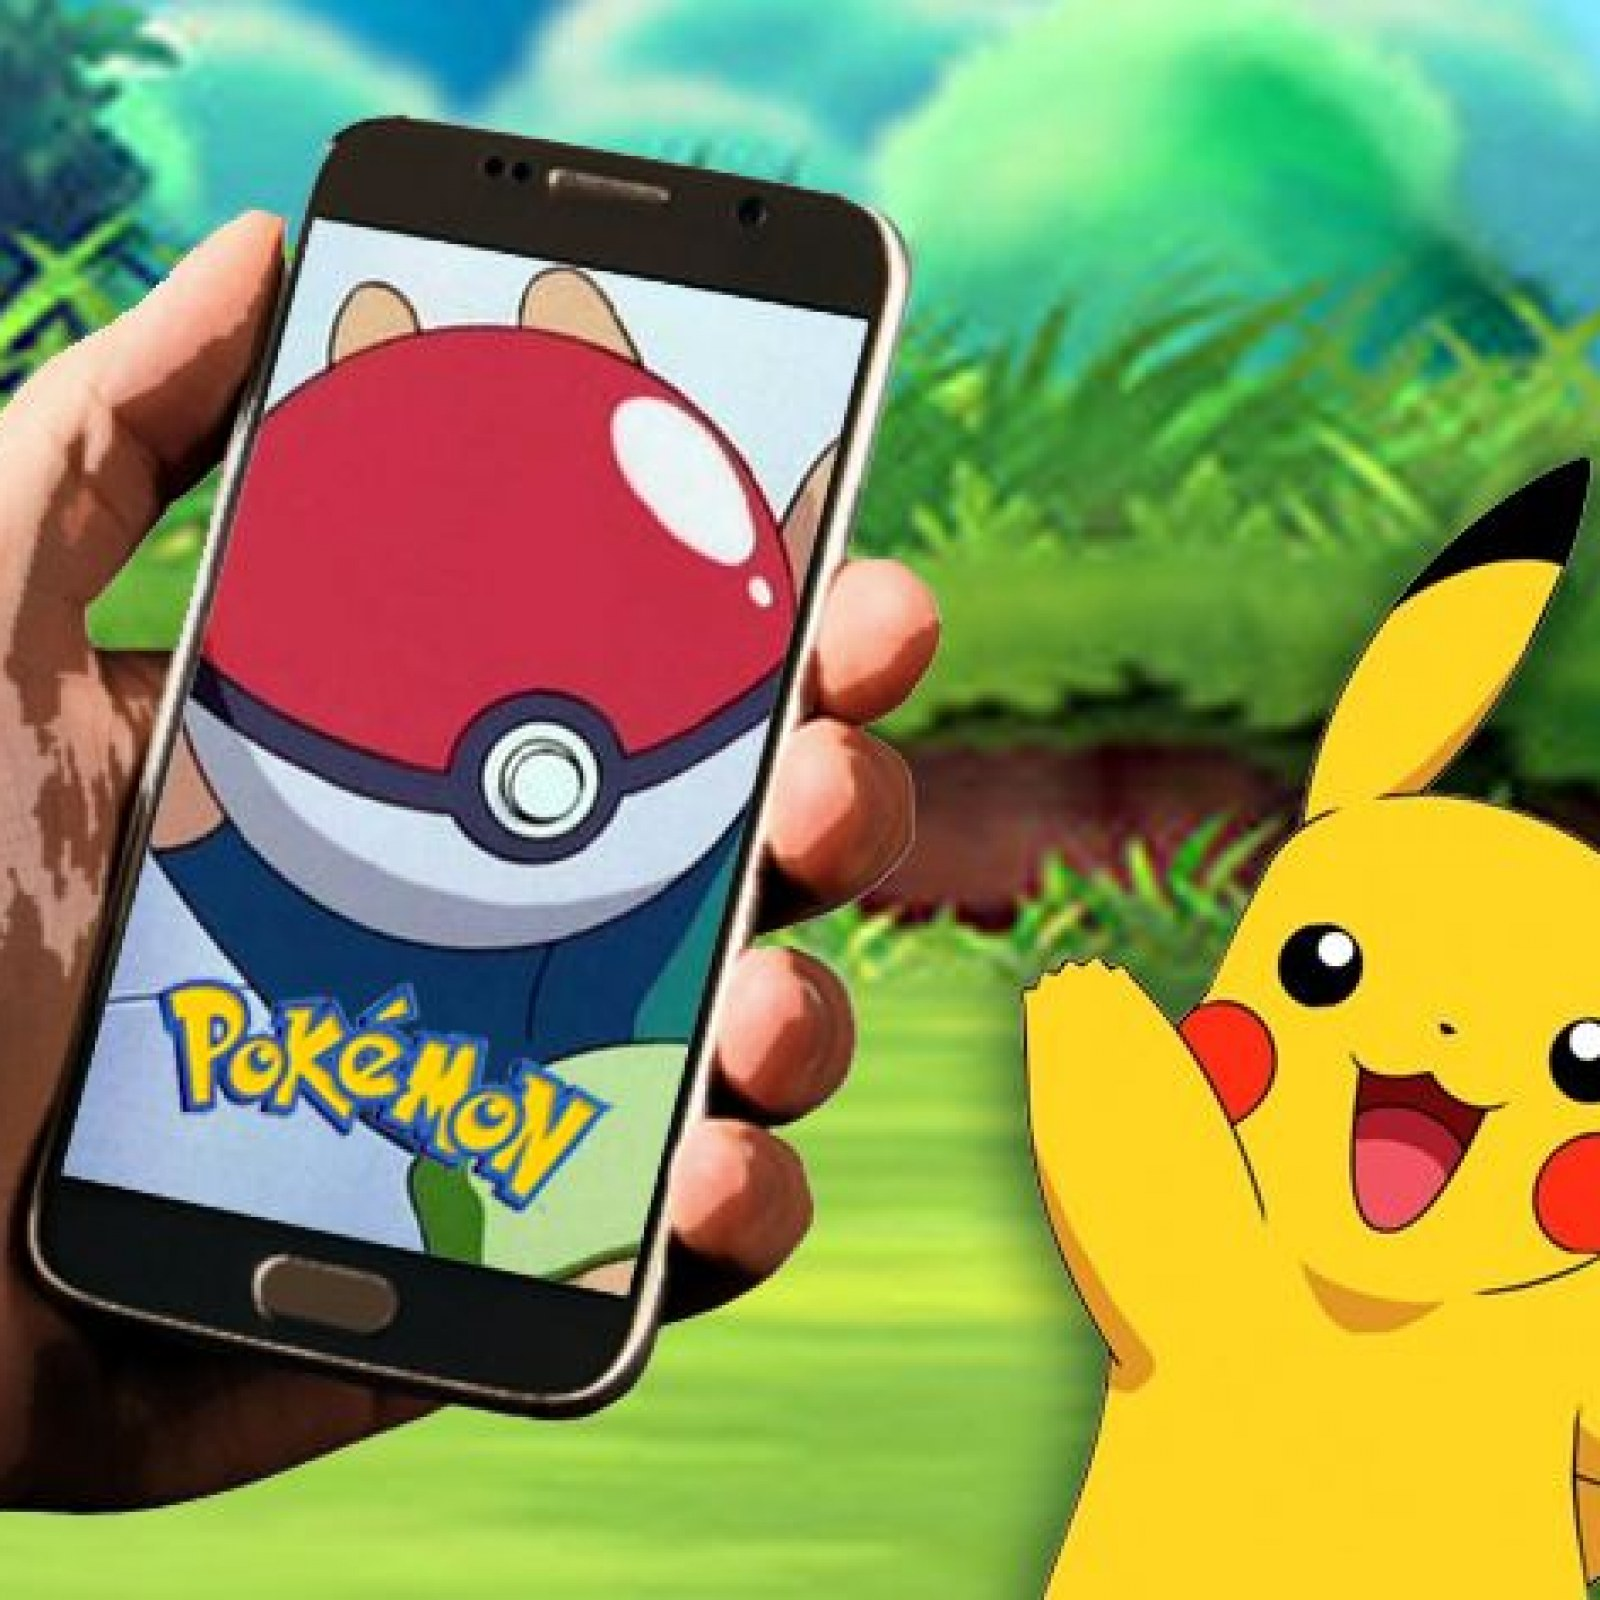 New Pokemon Mobile Game From Dena In The Works